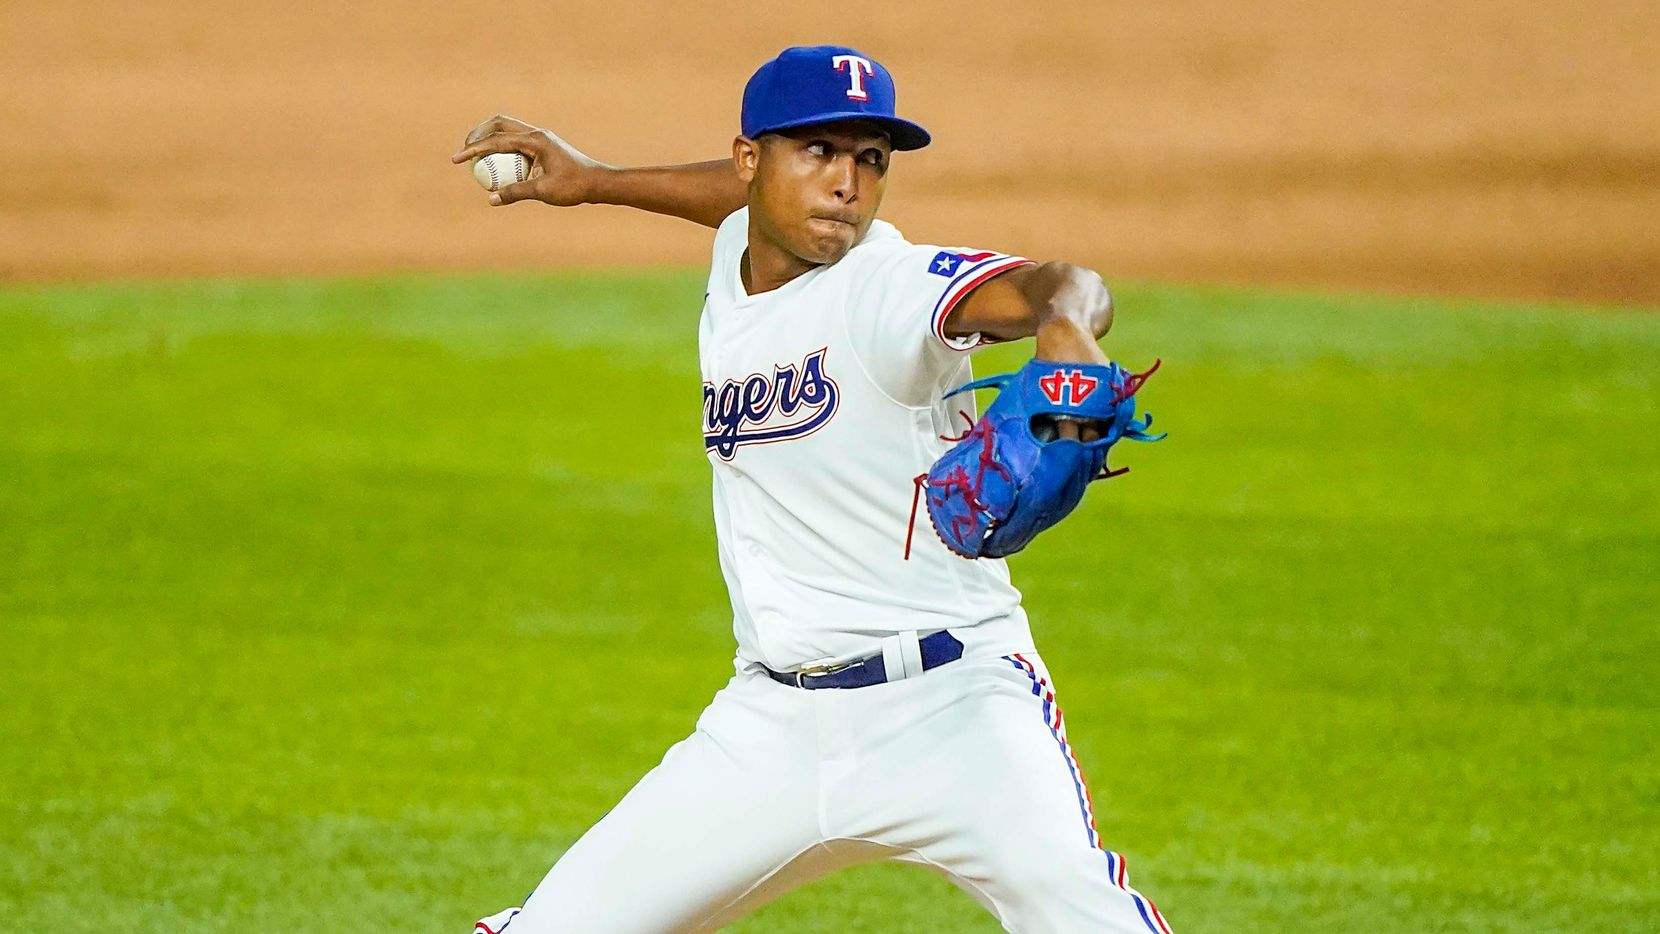 Texas Rangers pitcher Jose Leclerc pitches during the ninth inning on opening day against the Colorado Rockies at Globe Life Field on Friday, July 24, 2020.